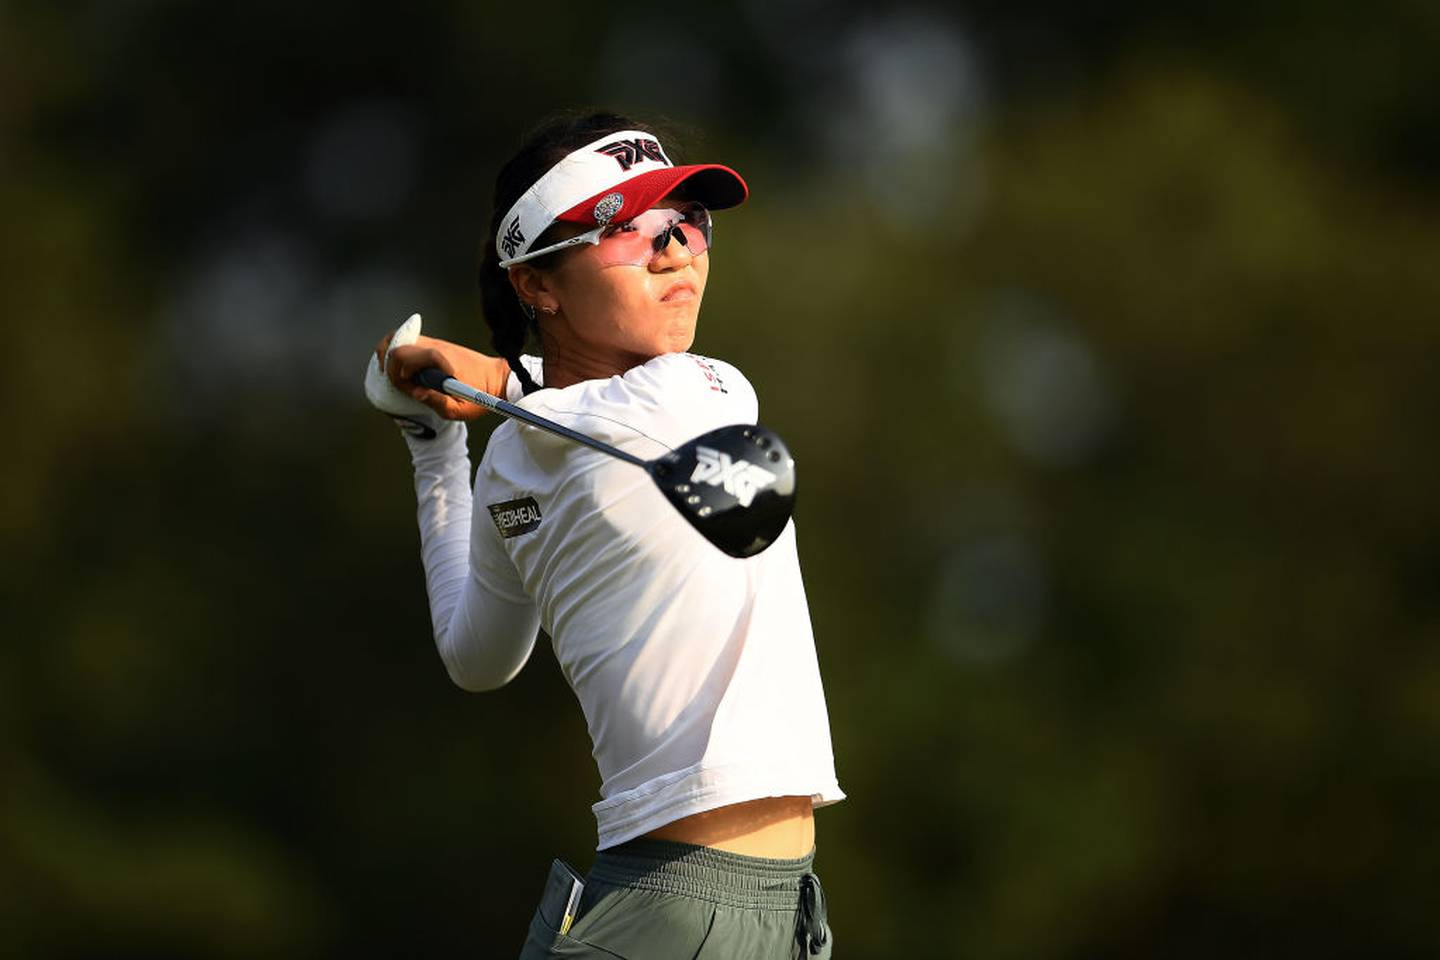 Lydia Ko tees off at the US Women's Open